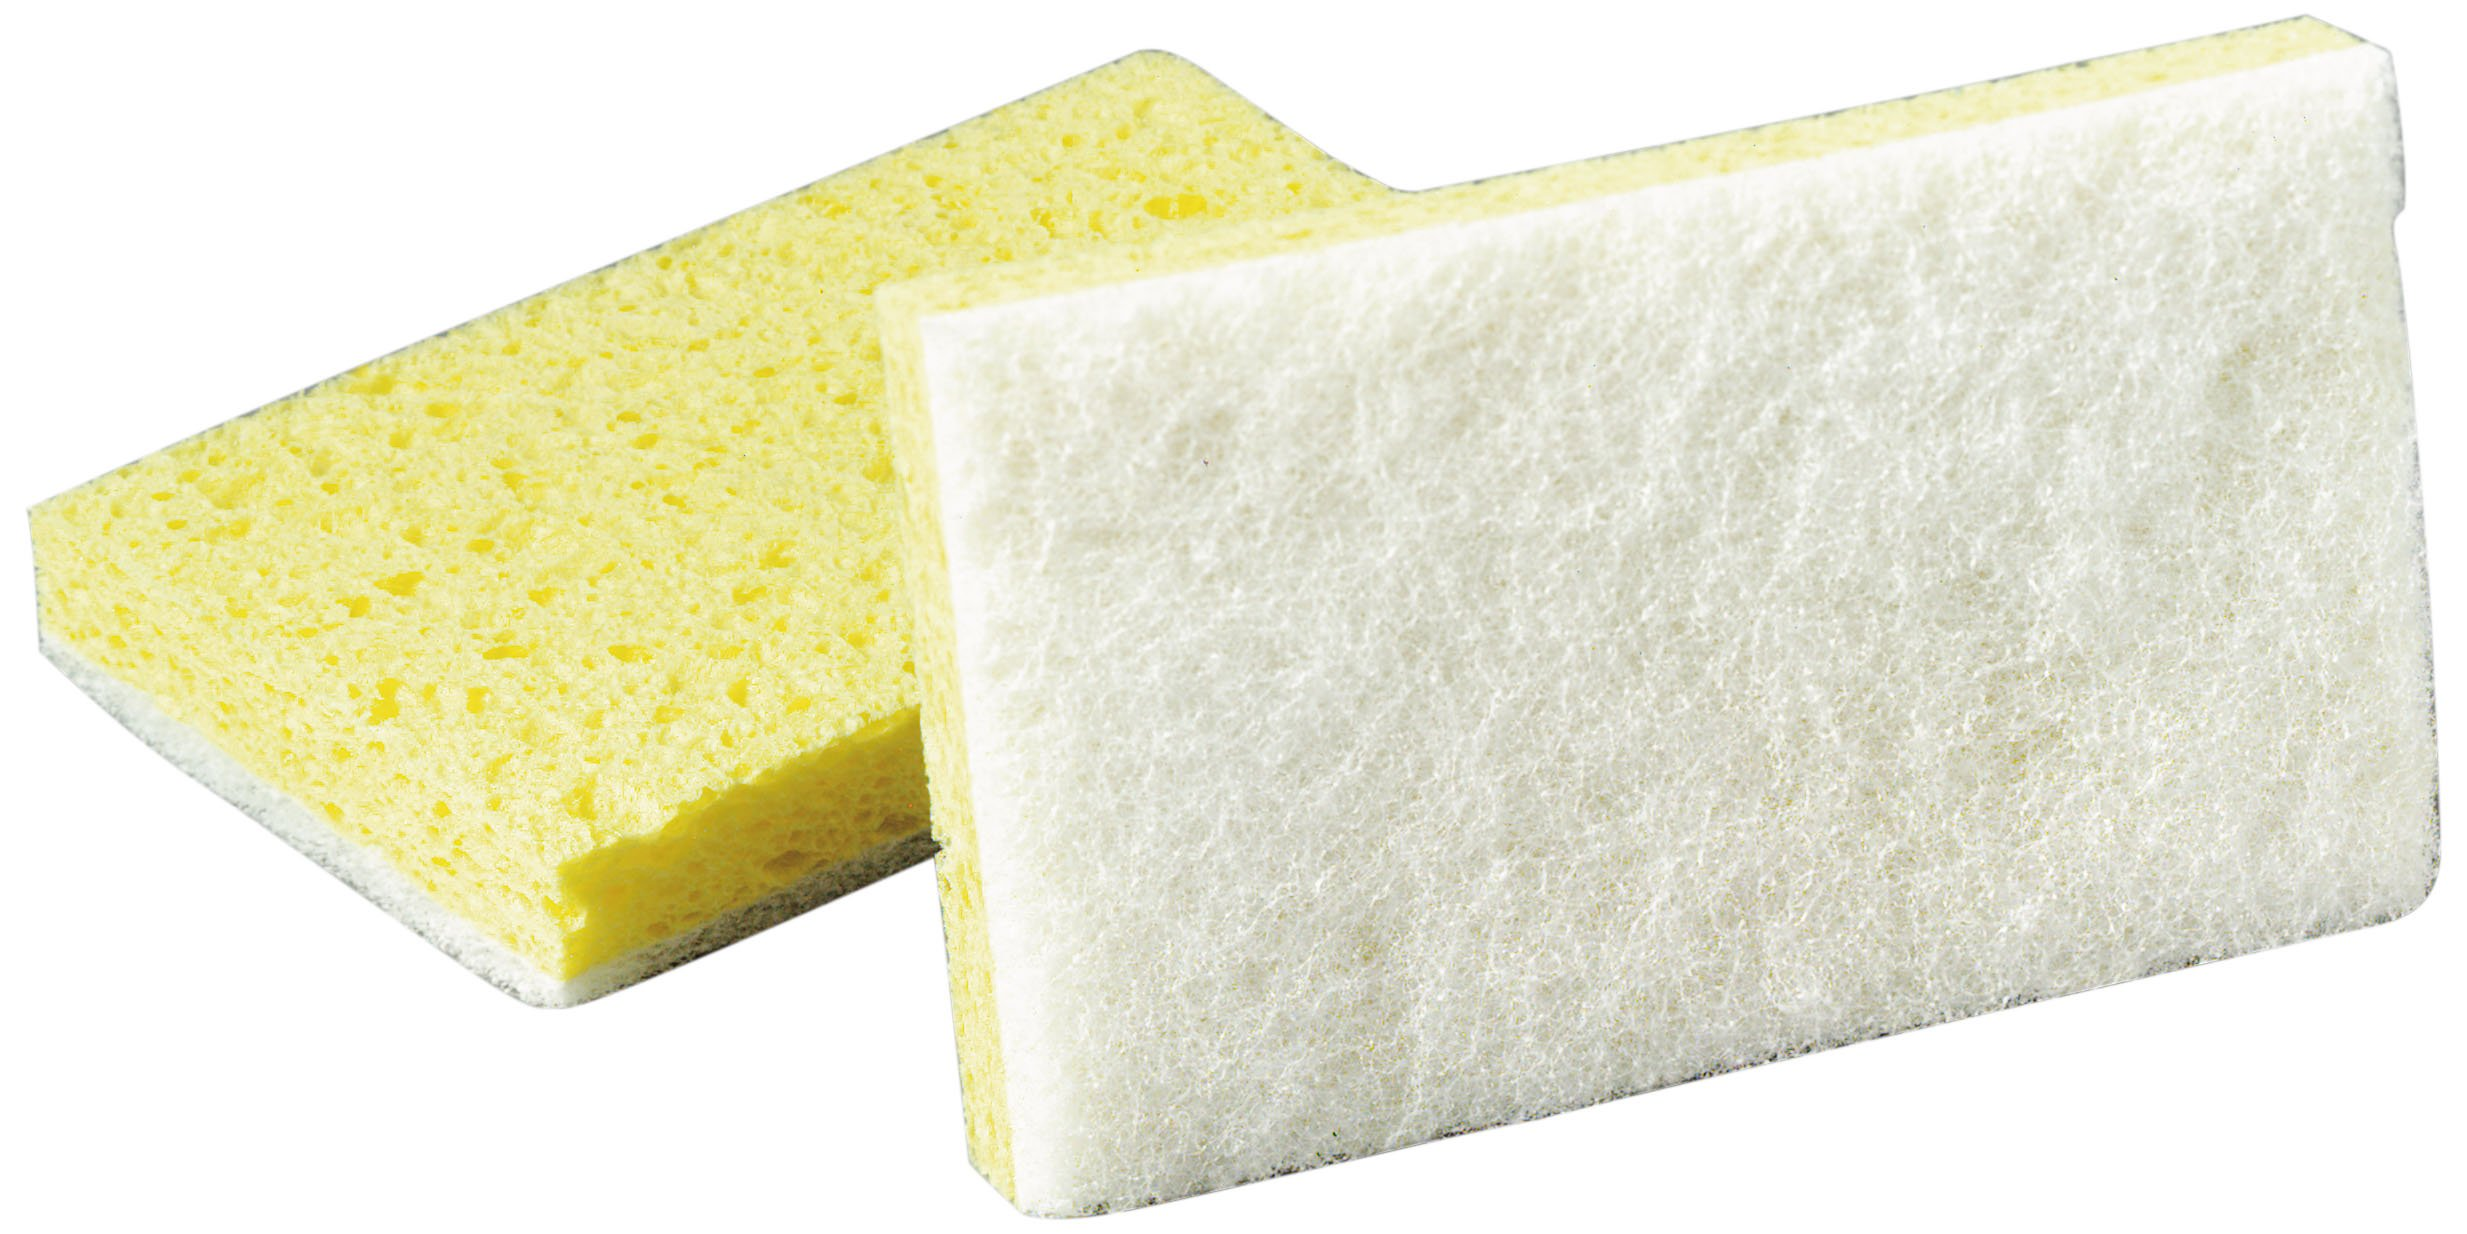 Scotch-Brite 63 Light Duty Scrub Sponge, 6-3/32'' Length x 3-19/32'' Width x 11/16'' Thick (Case of 20)